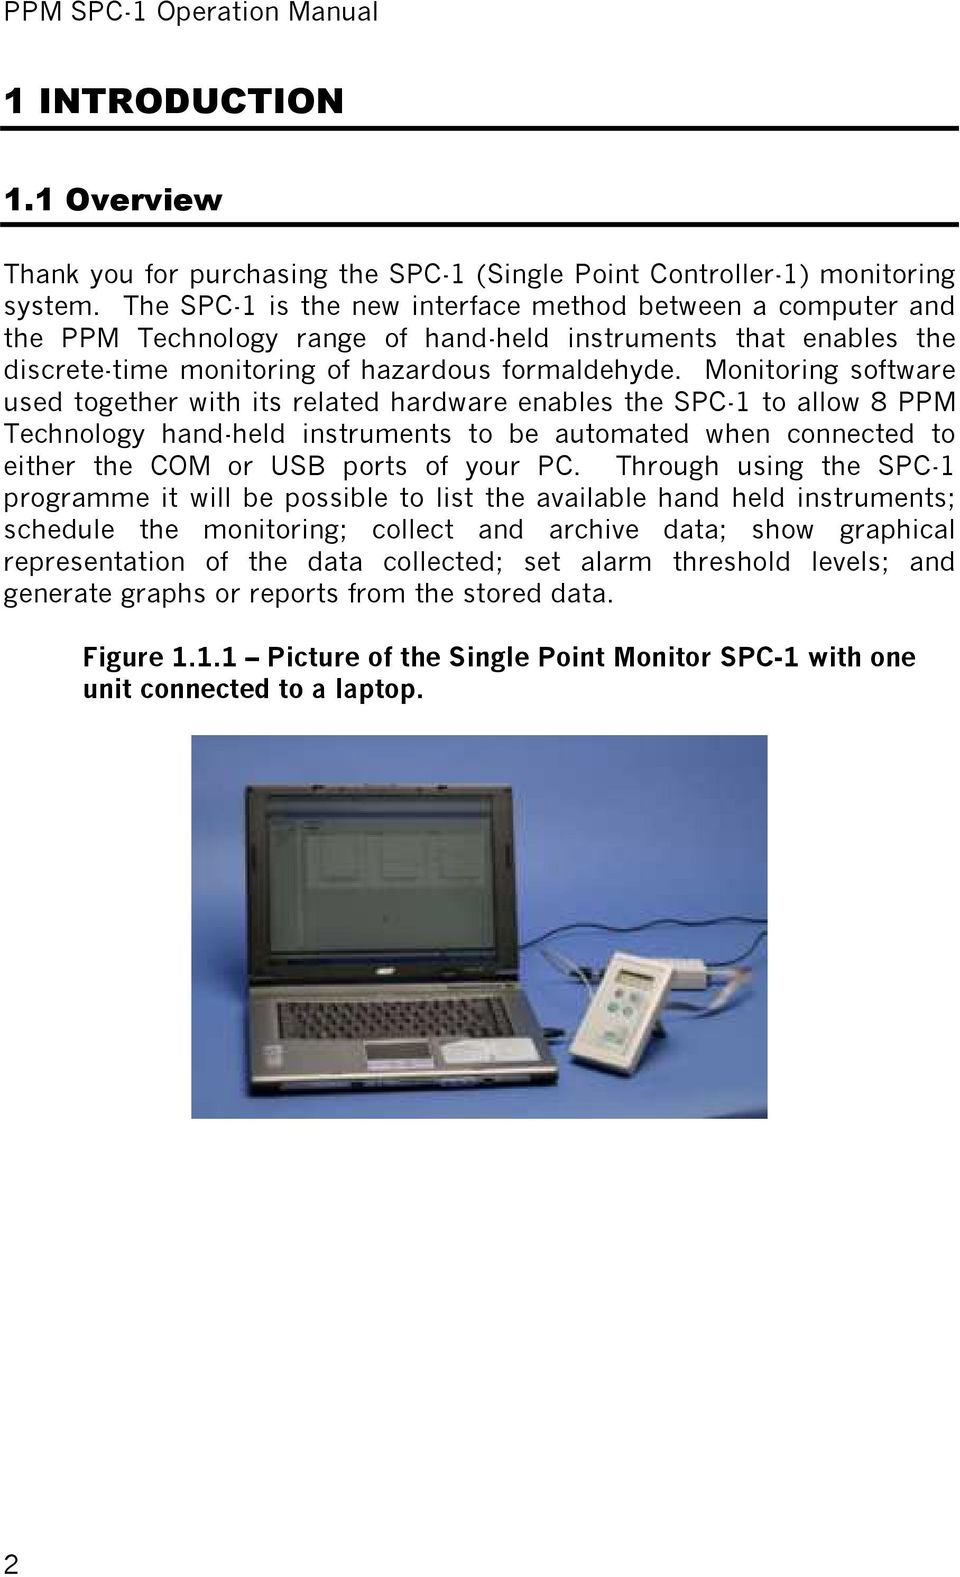 Monitoring software used together with its related hardware enables the SPC-1 to allow 8 PPM Technology hand-held instruments to be automated when connected to either the COM or USB ports of your PC.